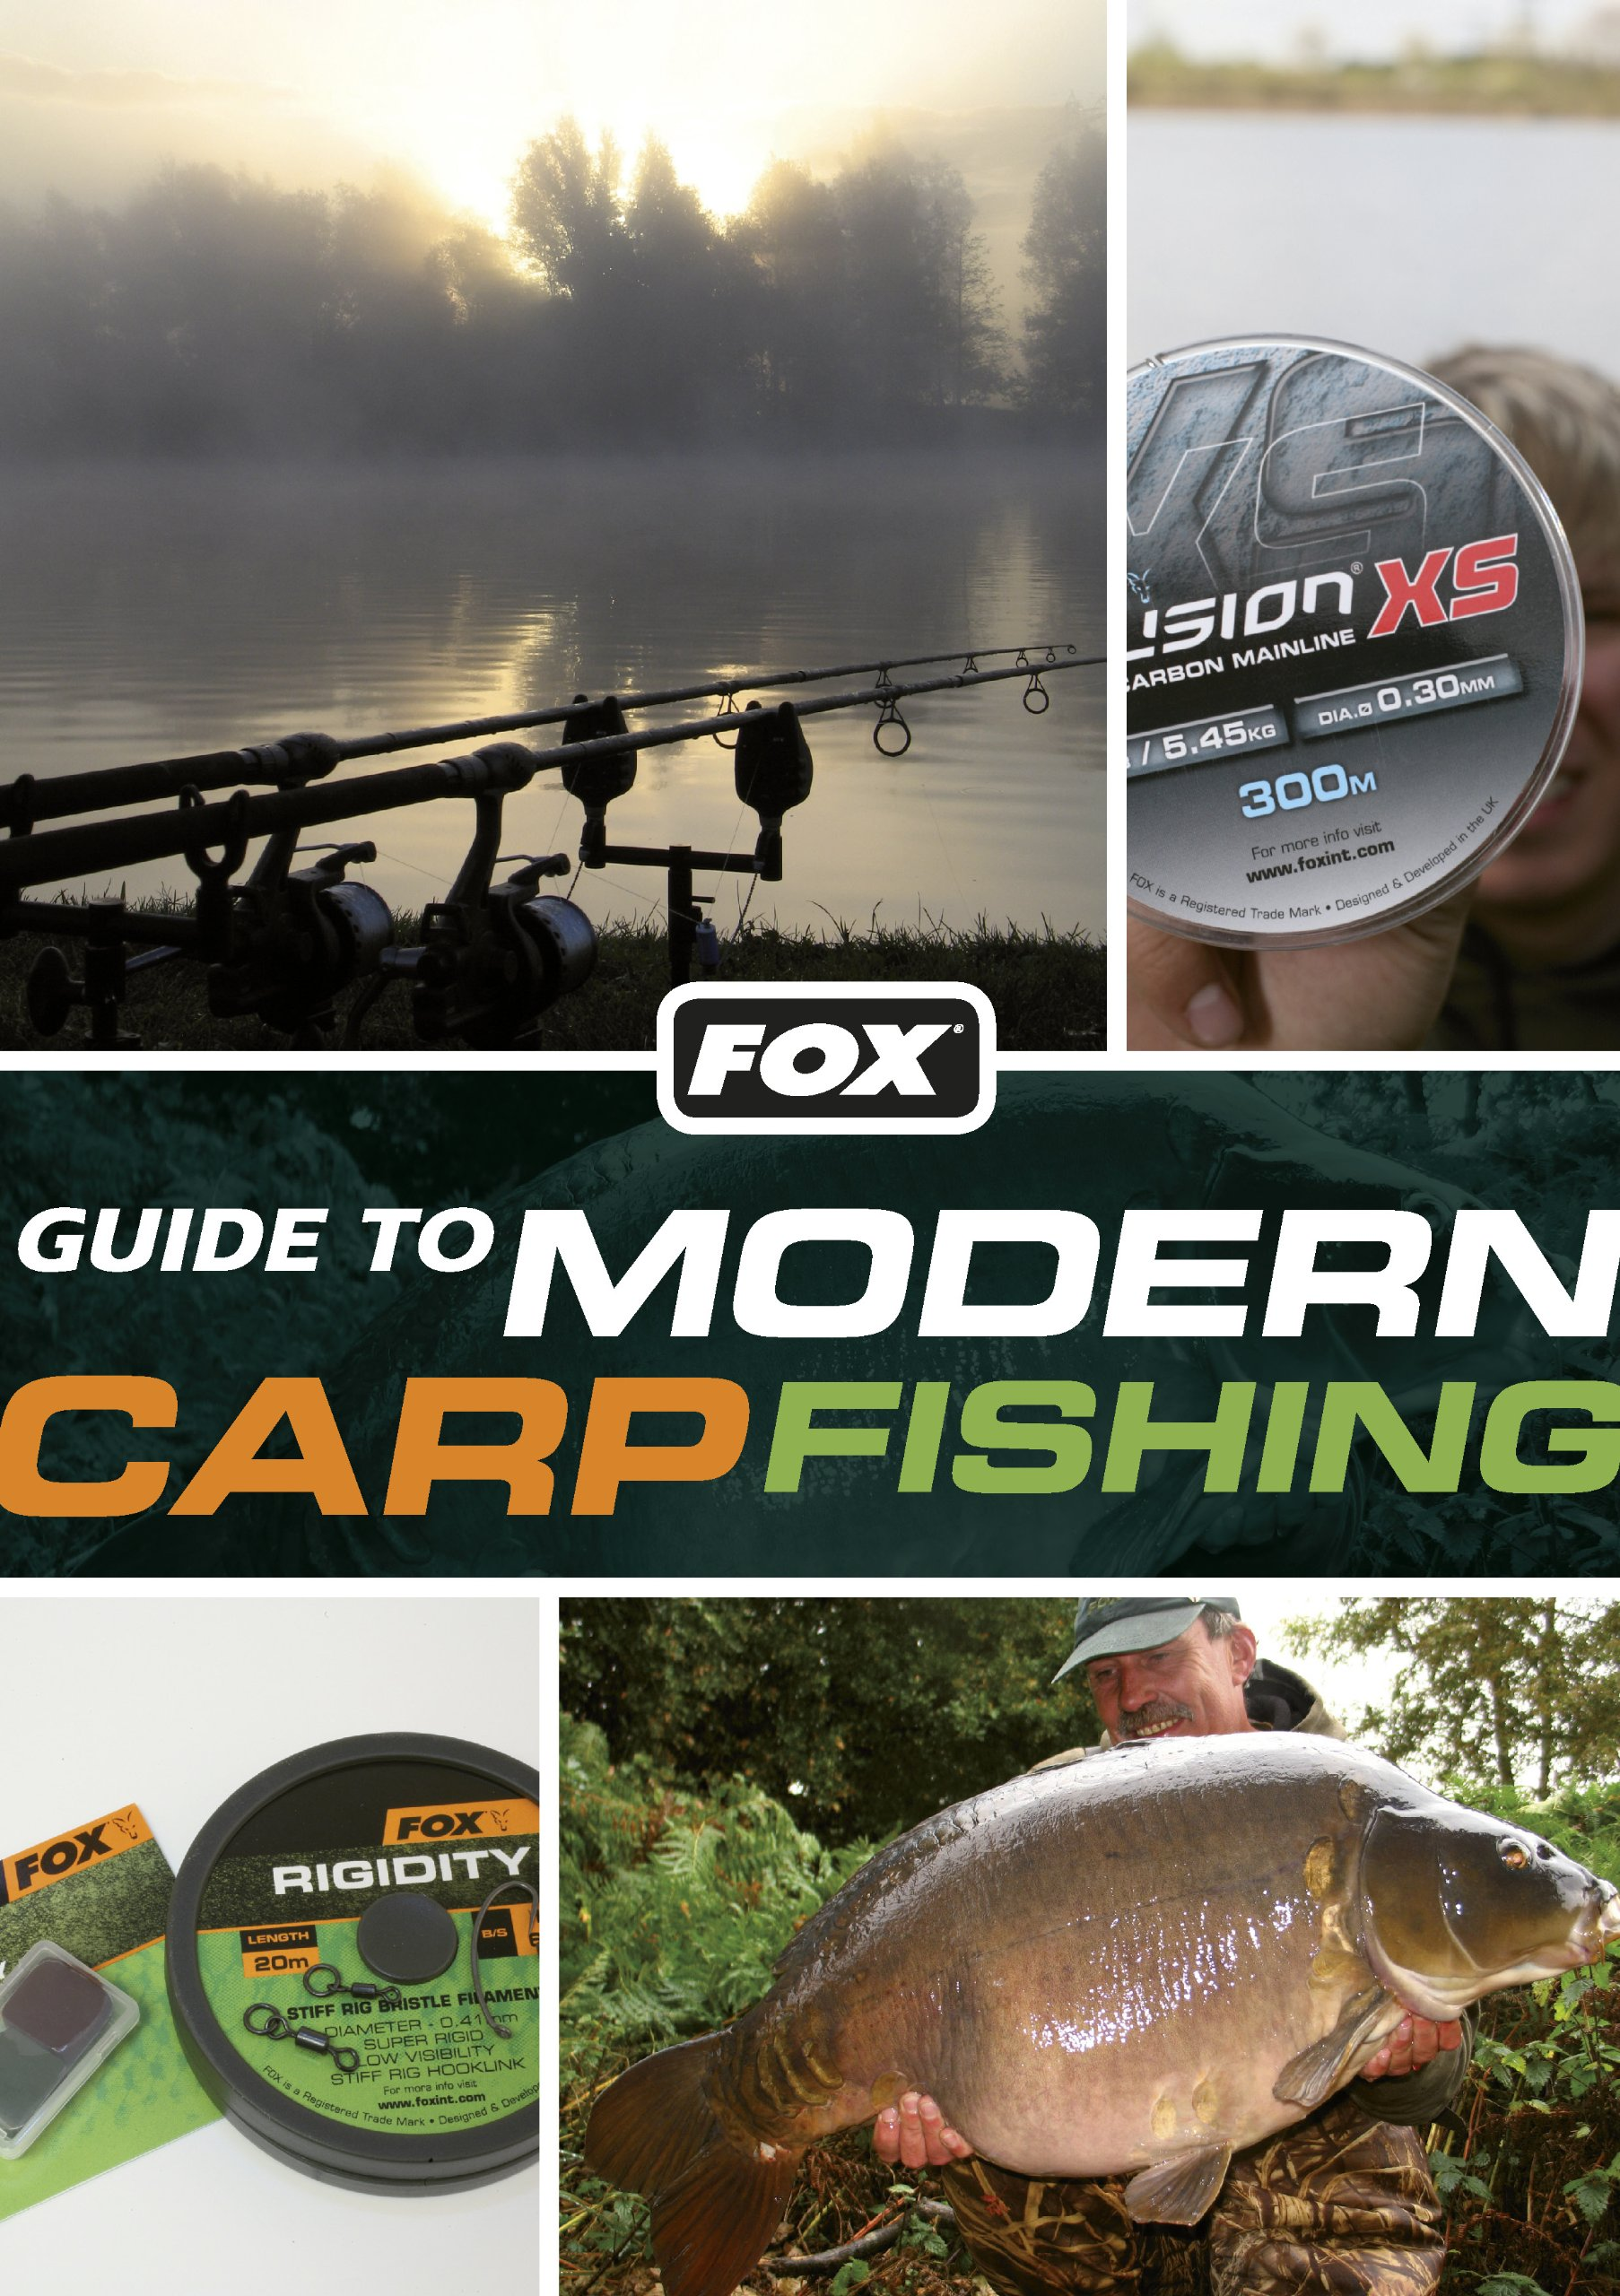 Image OfFox Guide To Modern Carp Fishing